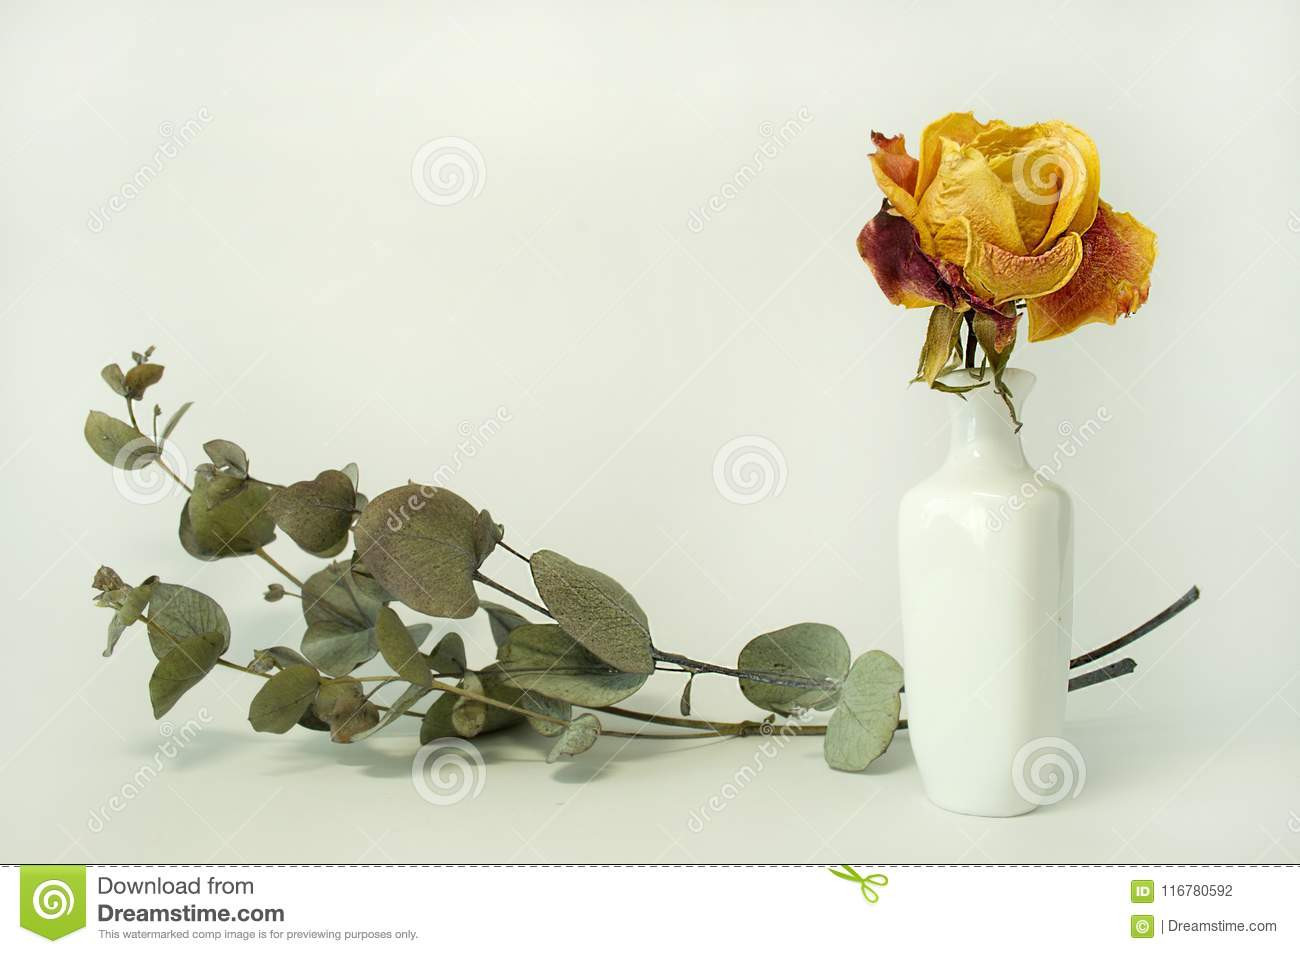 Vintage Milk Glass Bud Vase Of Rose In A Vase Stock Photo Image Of Beautiful Flower 116780592 with Regard to Download Rose In A Vase Stock Photo Image Of Beautiful Flower 116780592